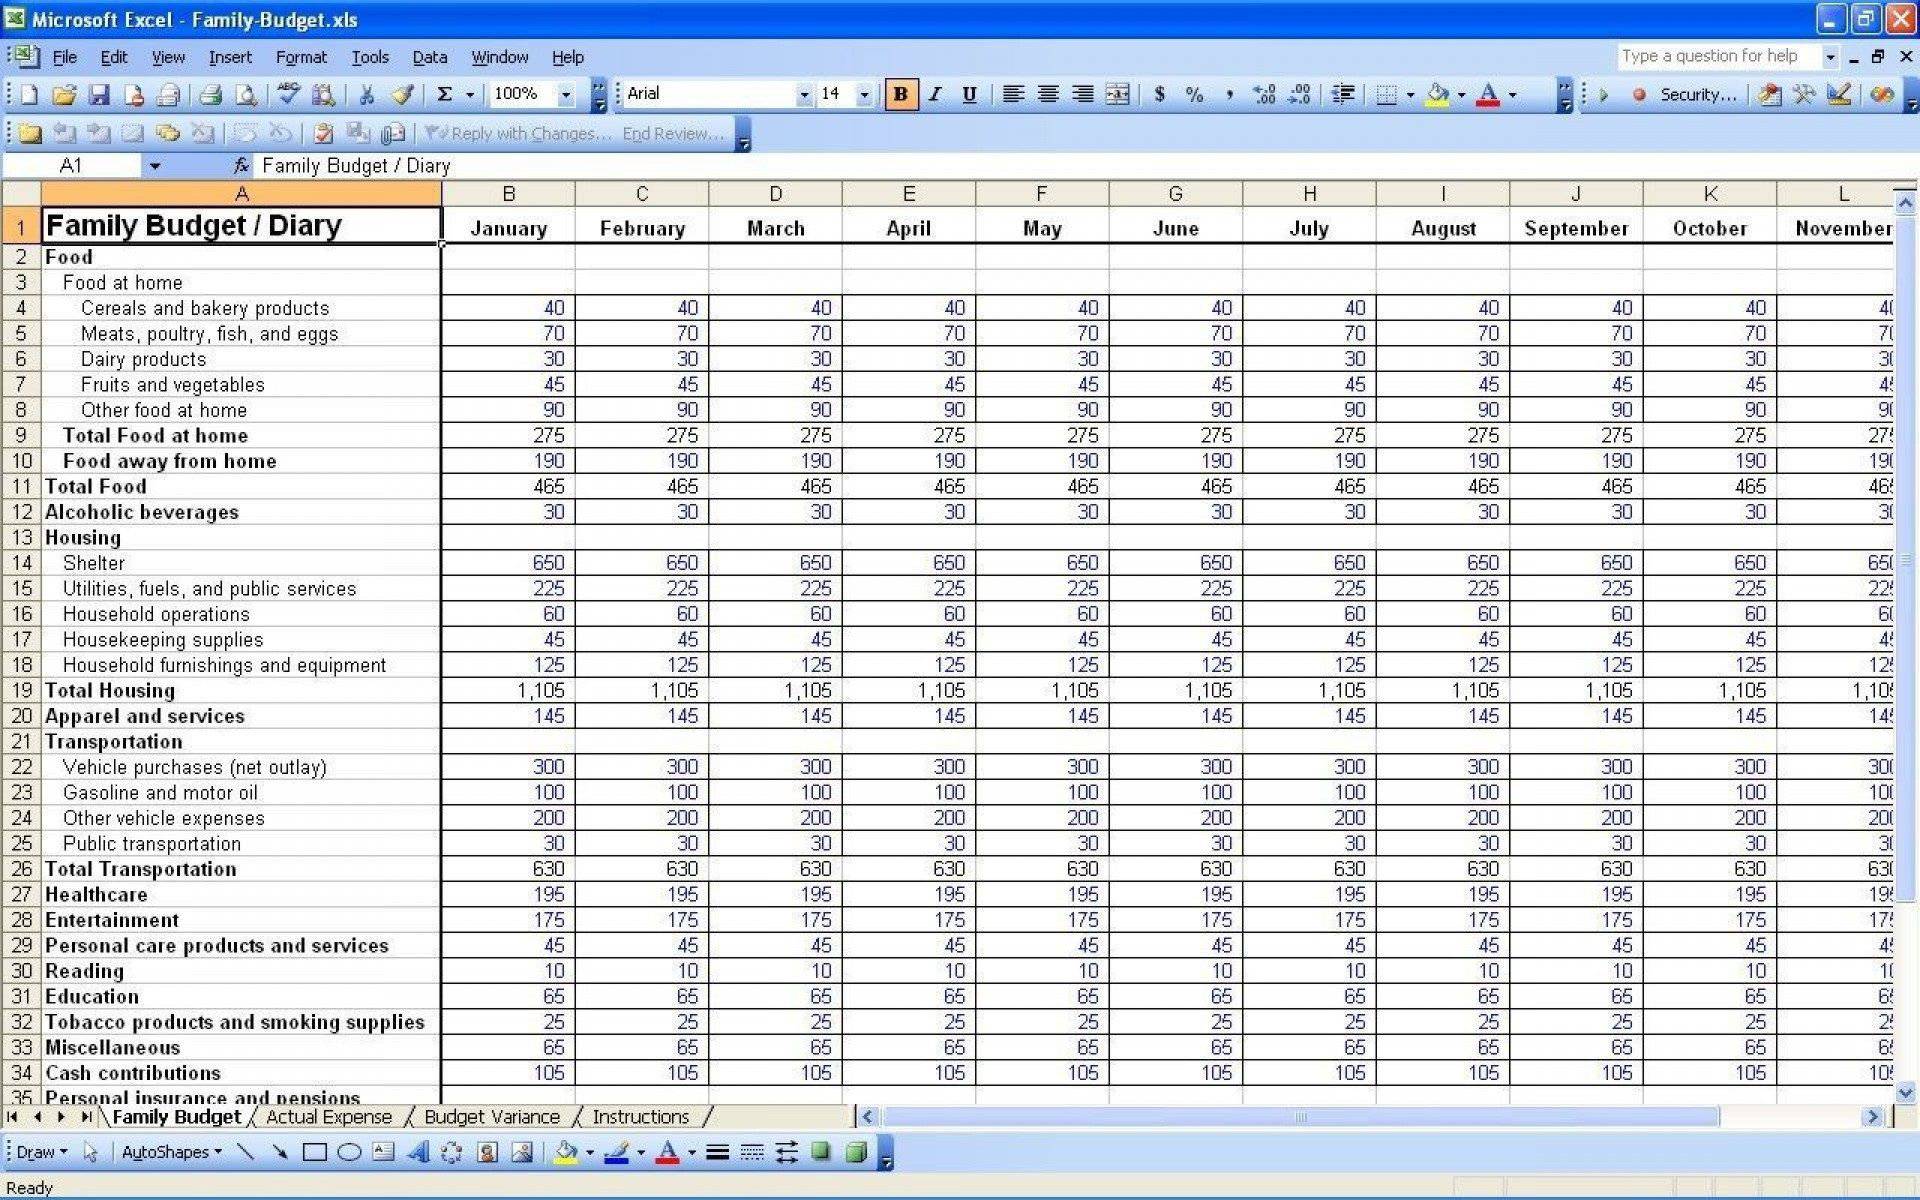 005 Unforgettable Personal Financial Template Excel Design  Statement Budget India Expense ReportFull